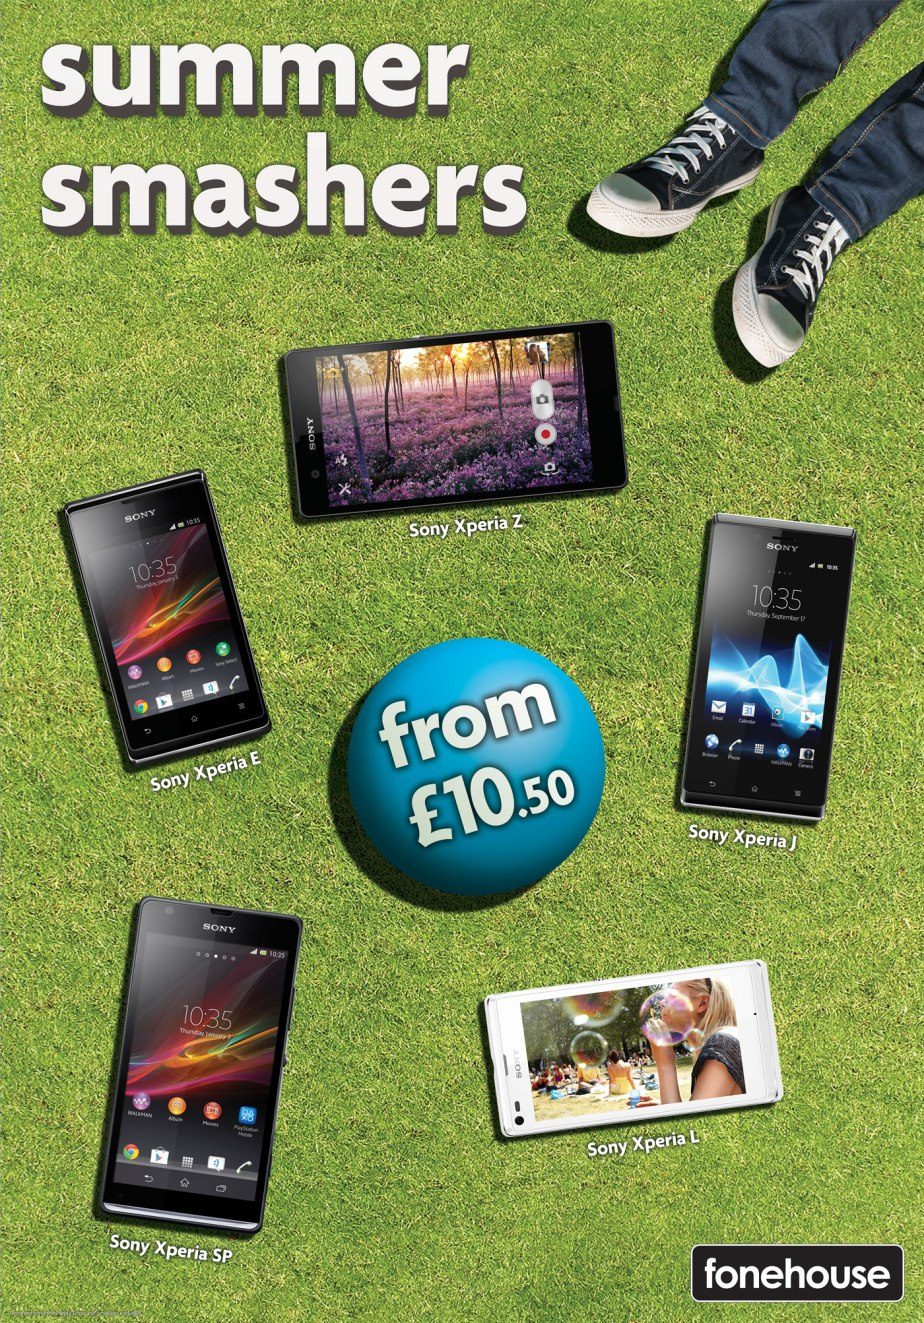 fonehouse_summer_smashers_poster